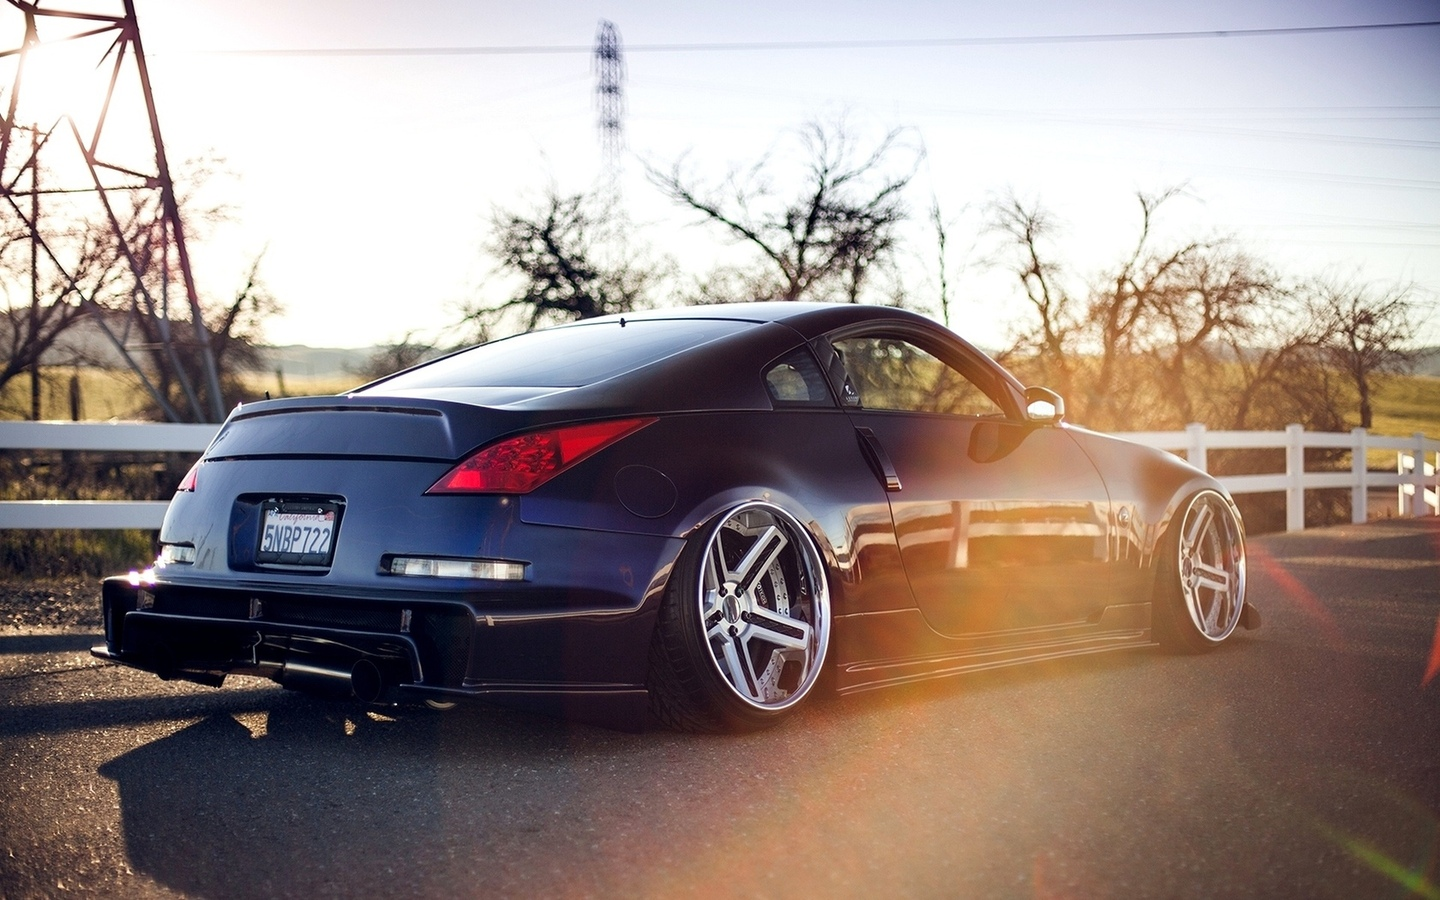 stance, 350z, автомобиль, tuning, 350з, ниссан, nissan, twin turbo, car